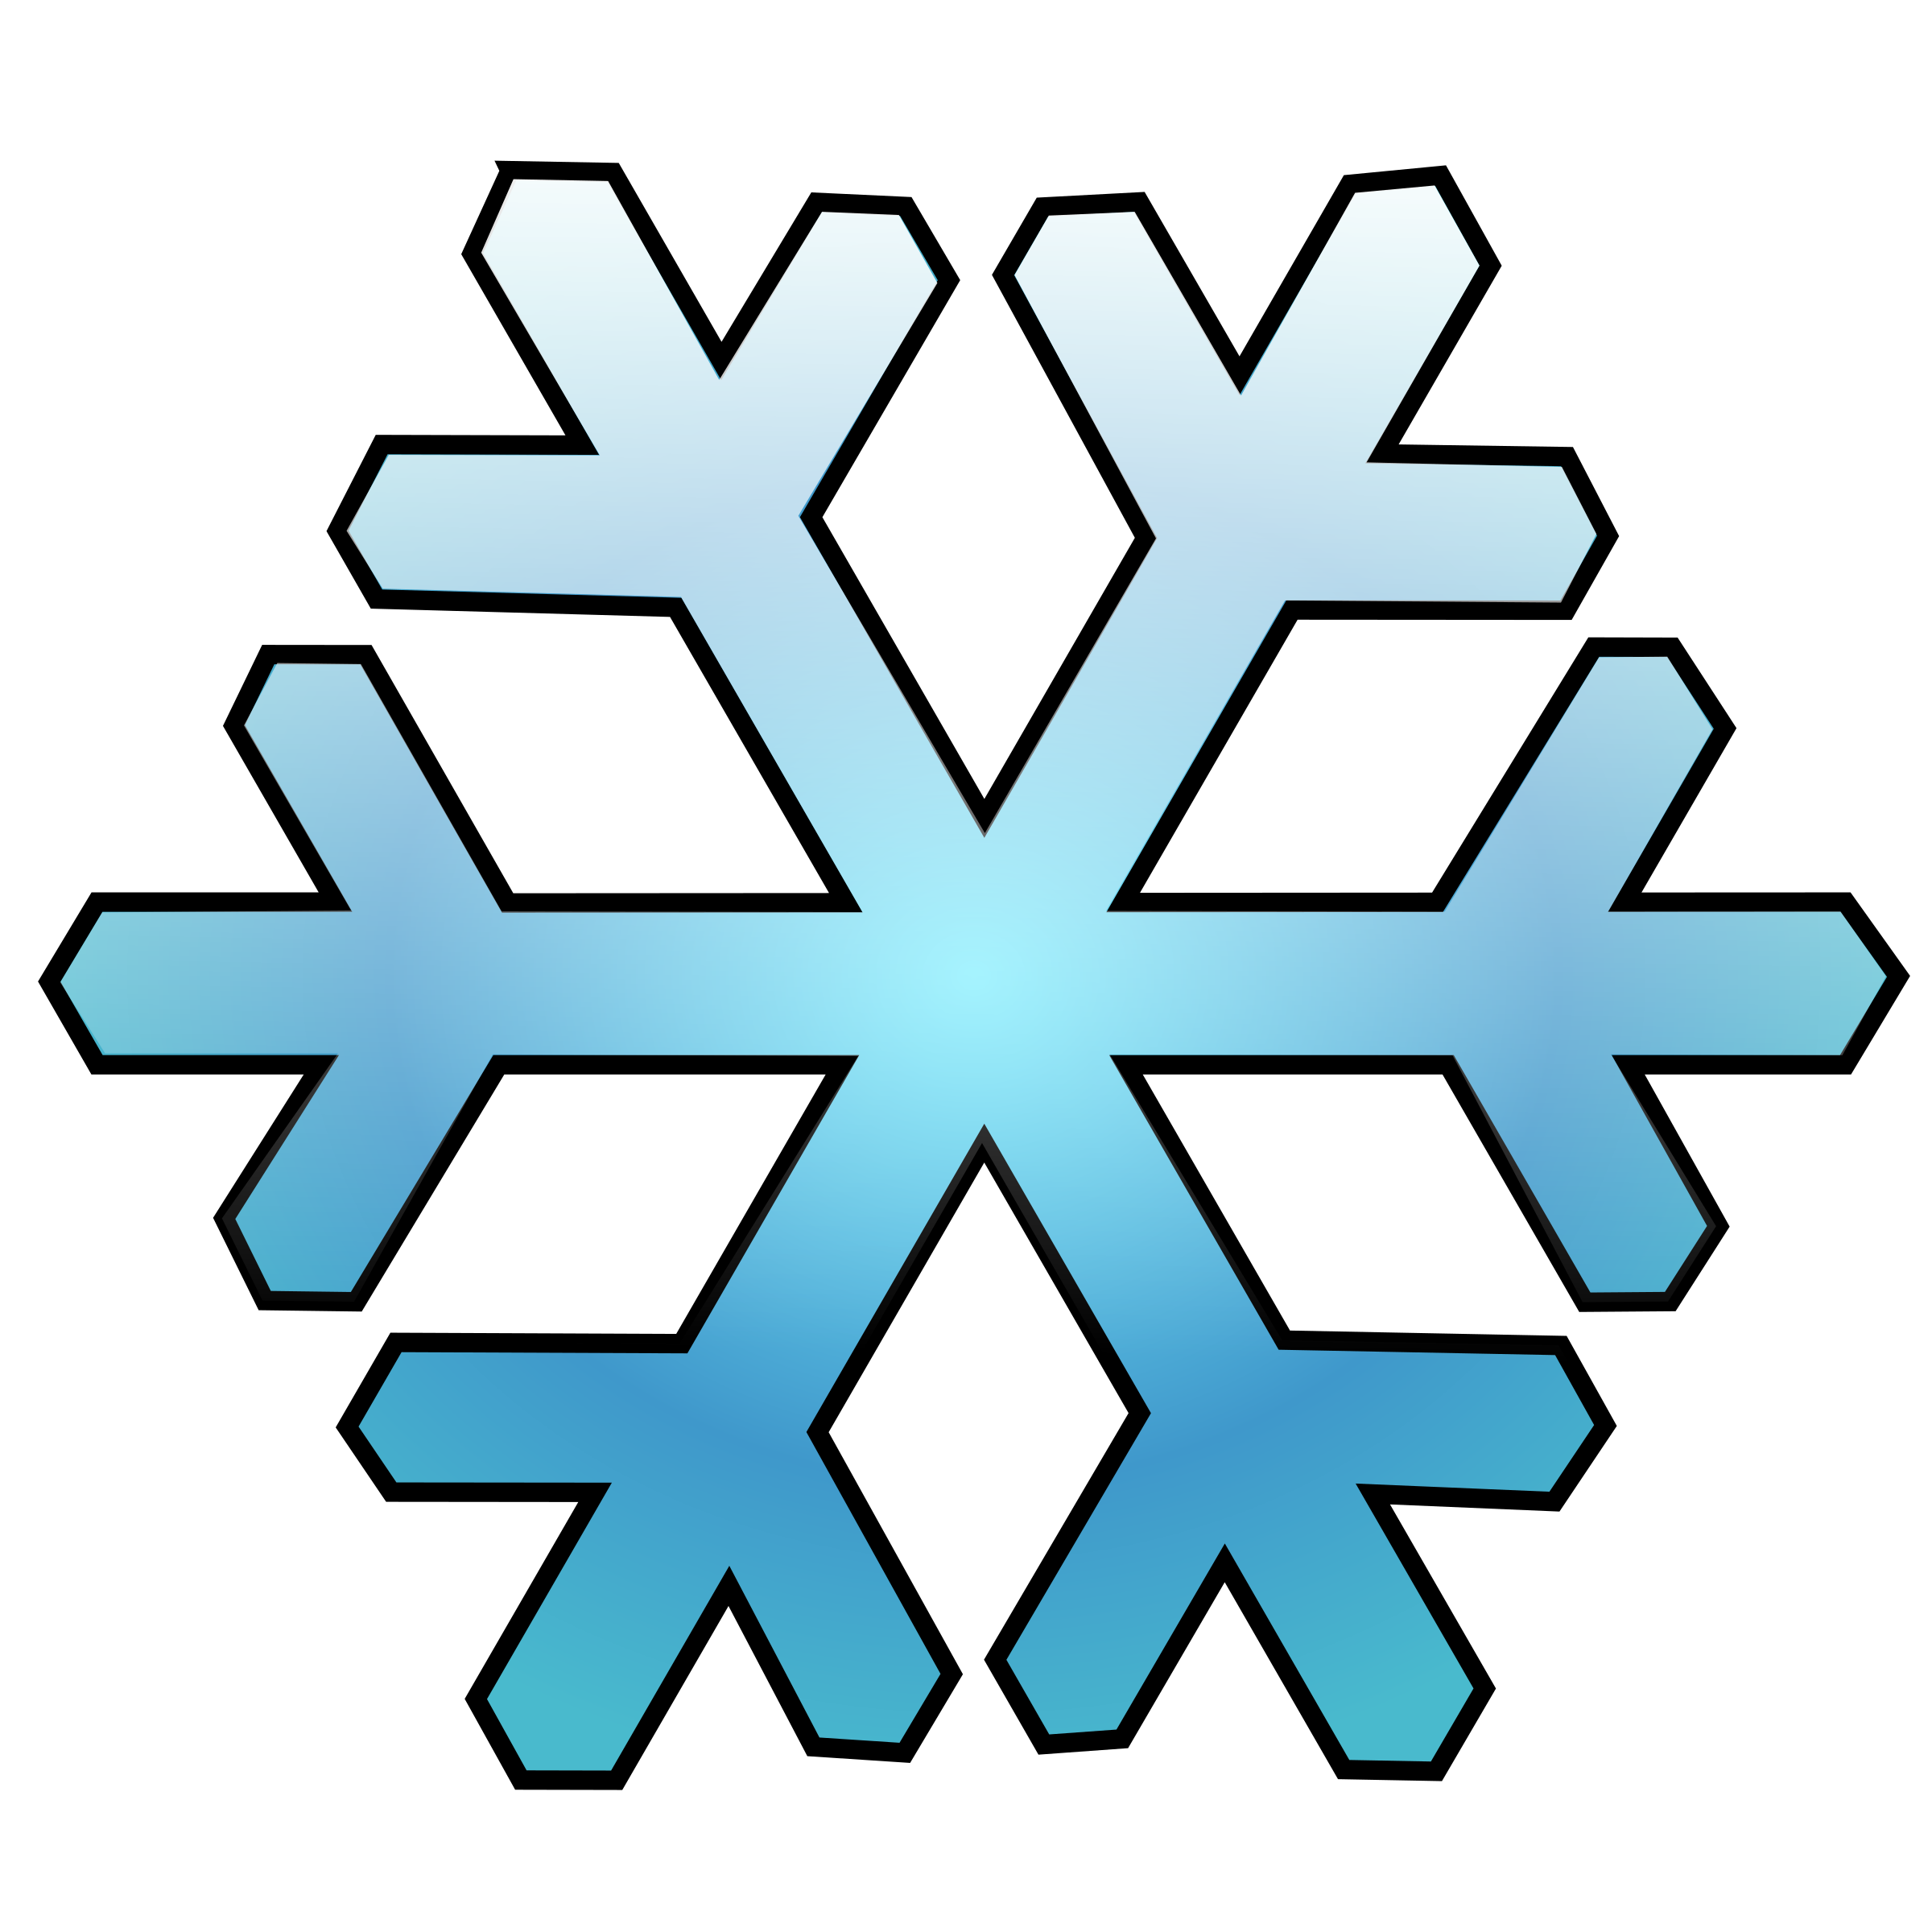 Snowflake art clipart clipart transparent stock Clipart - Snowflake clipart transparent stock